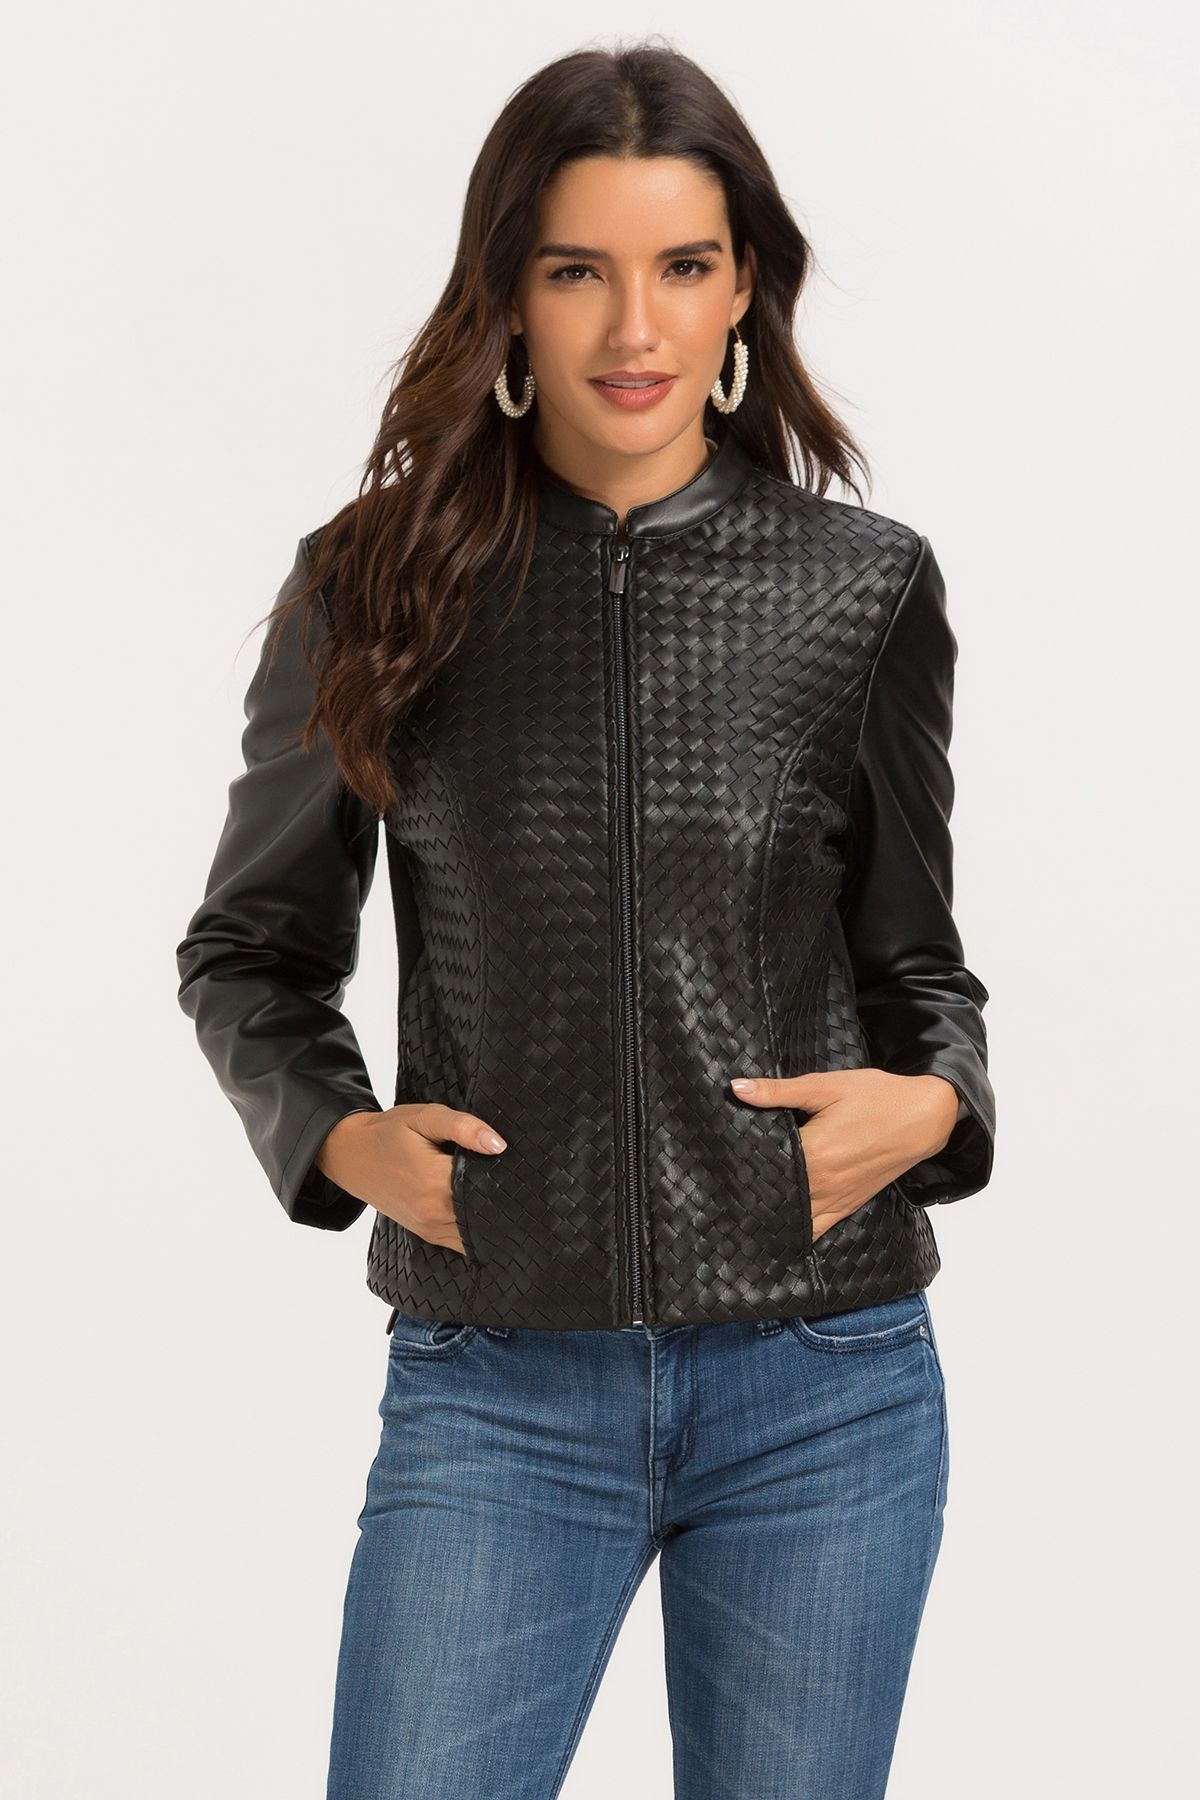 Spice up your outfit with Escalier Faux Leather Moto Zip